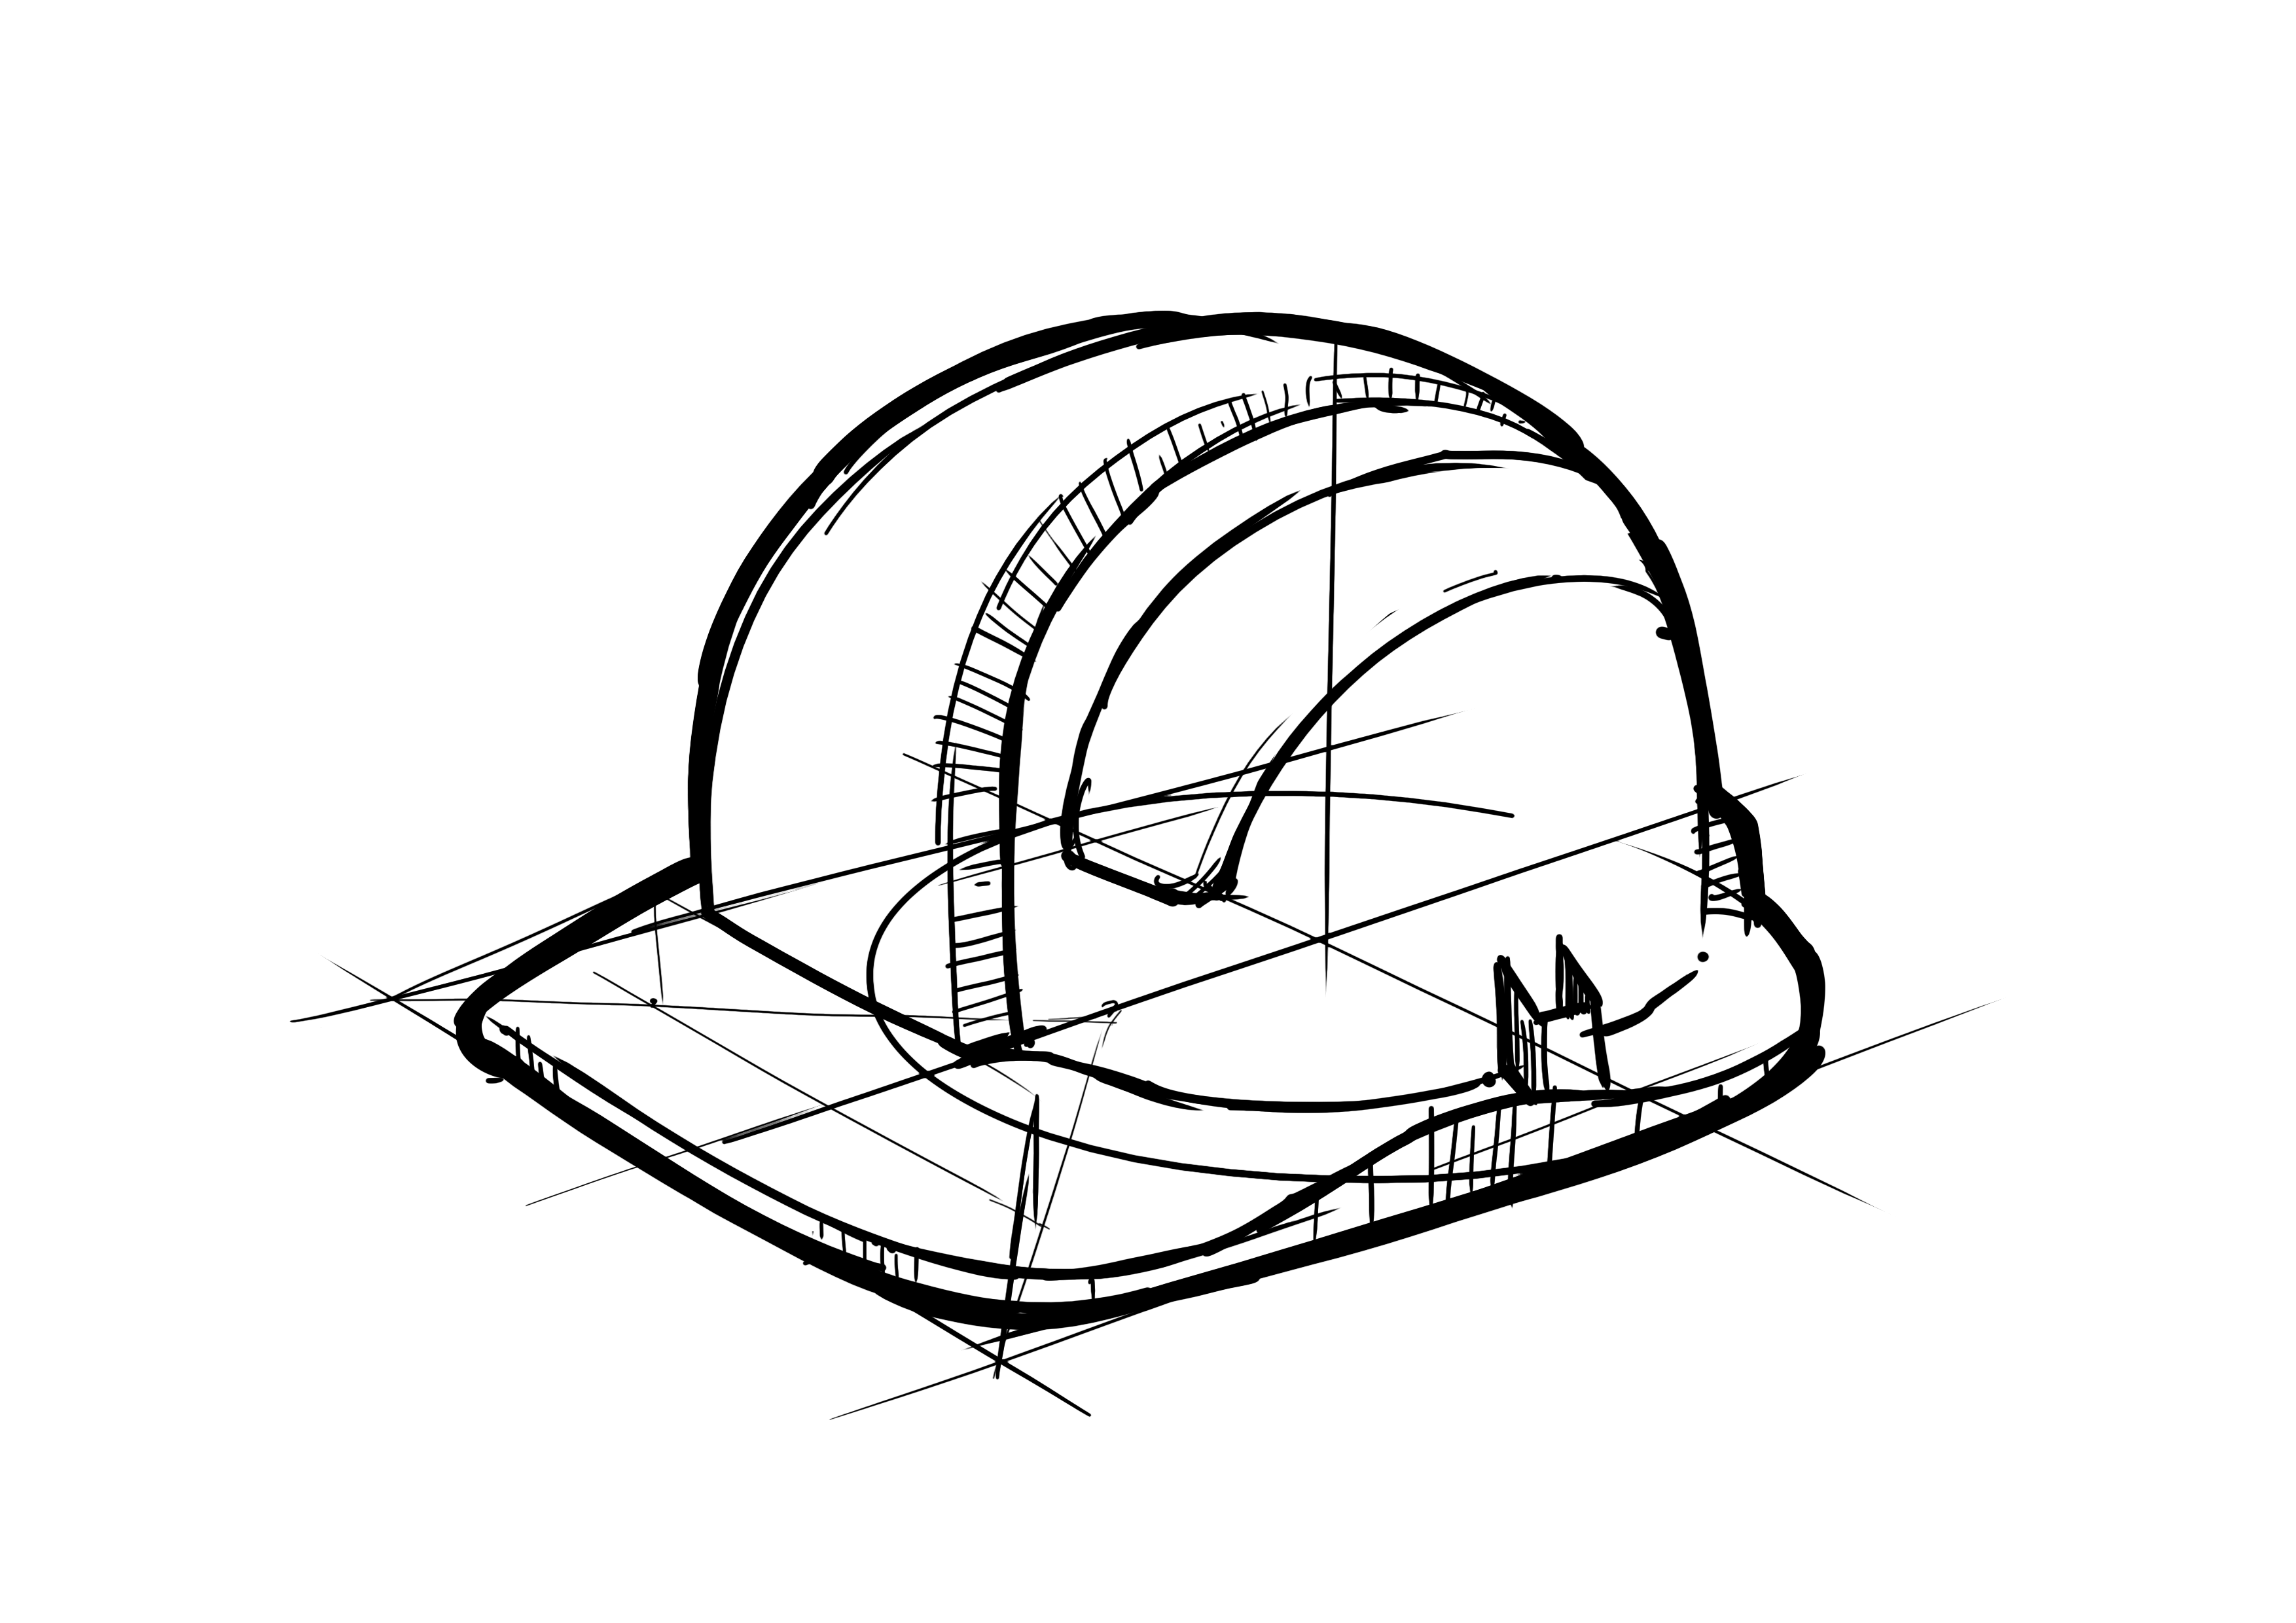 Hard hat, workers hat - large png